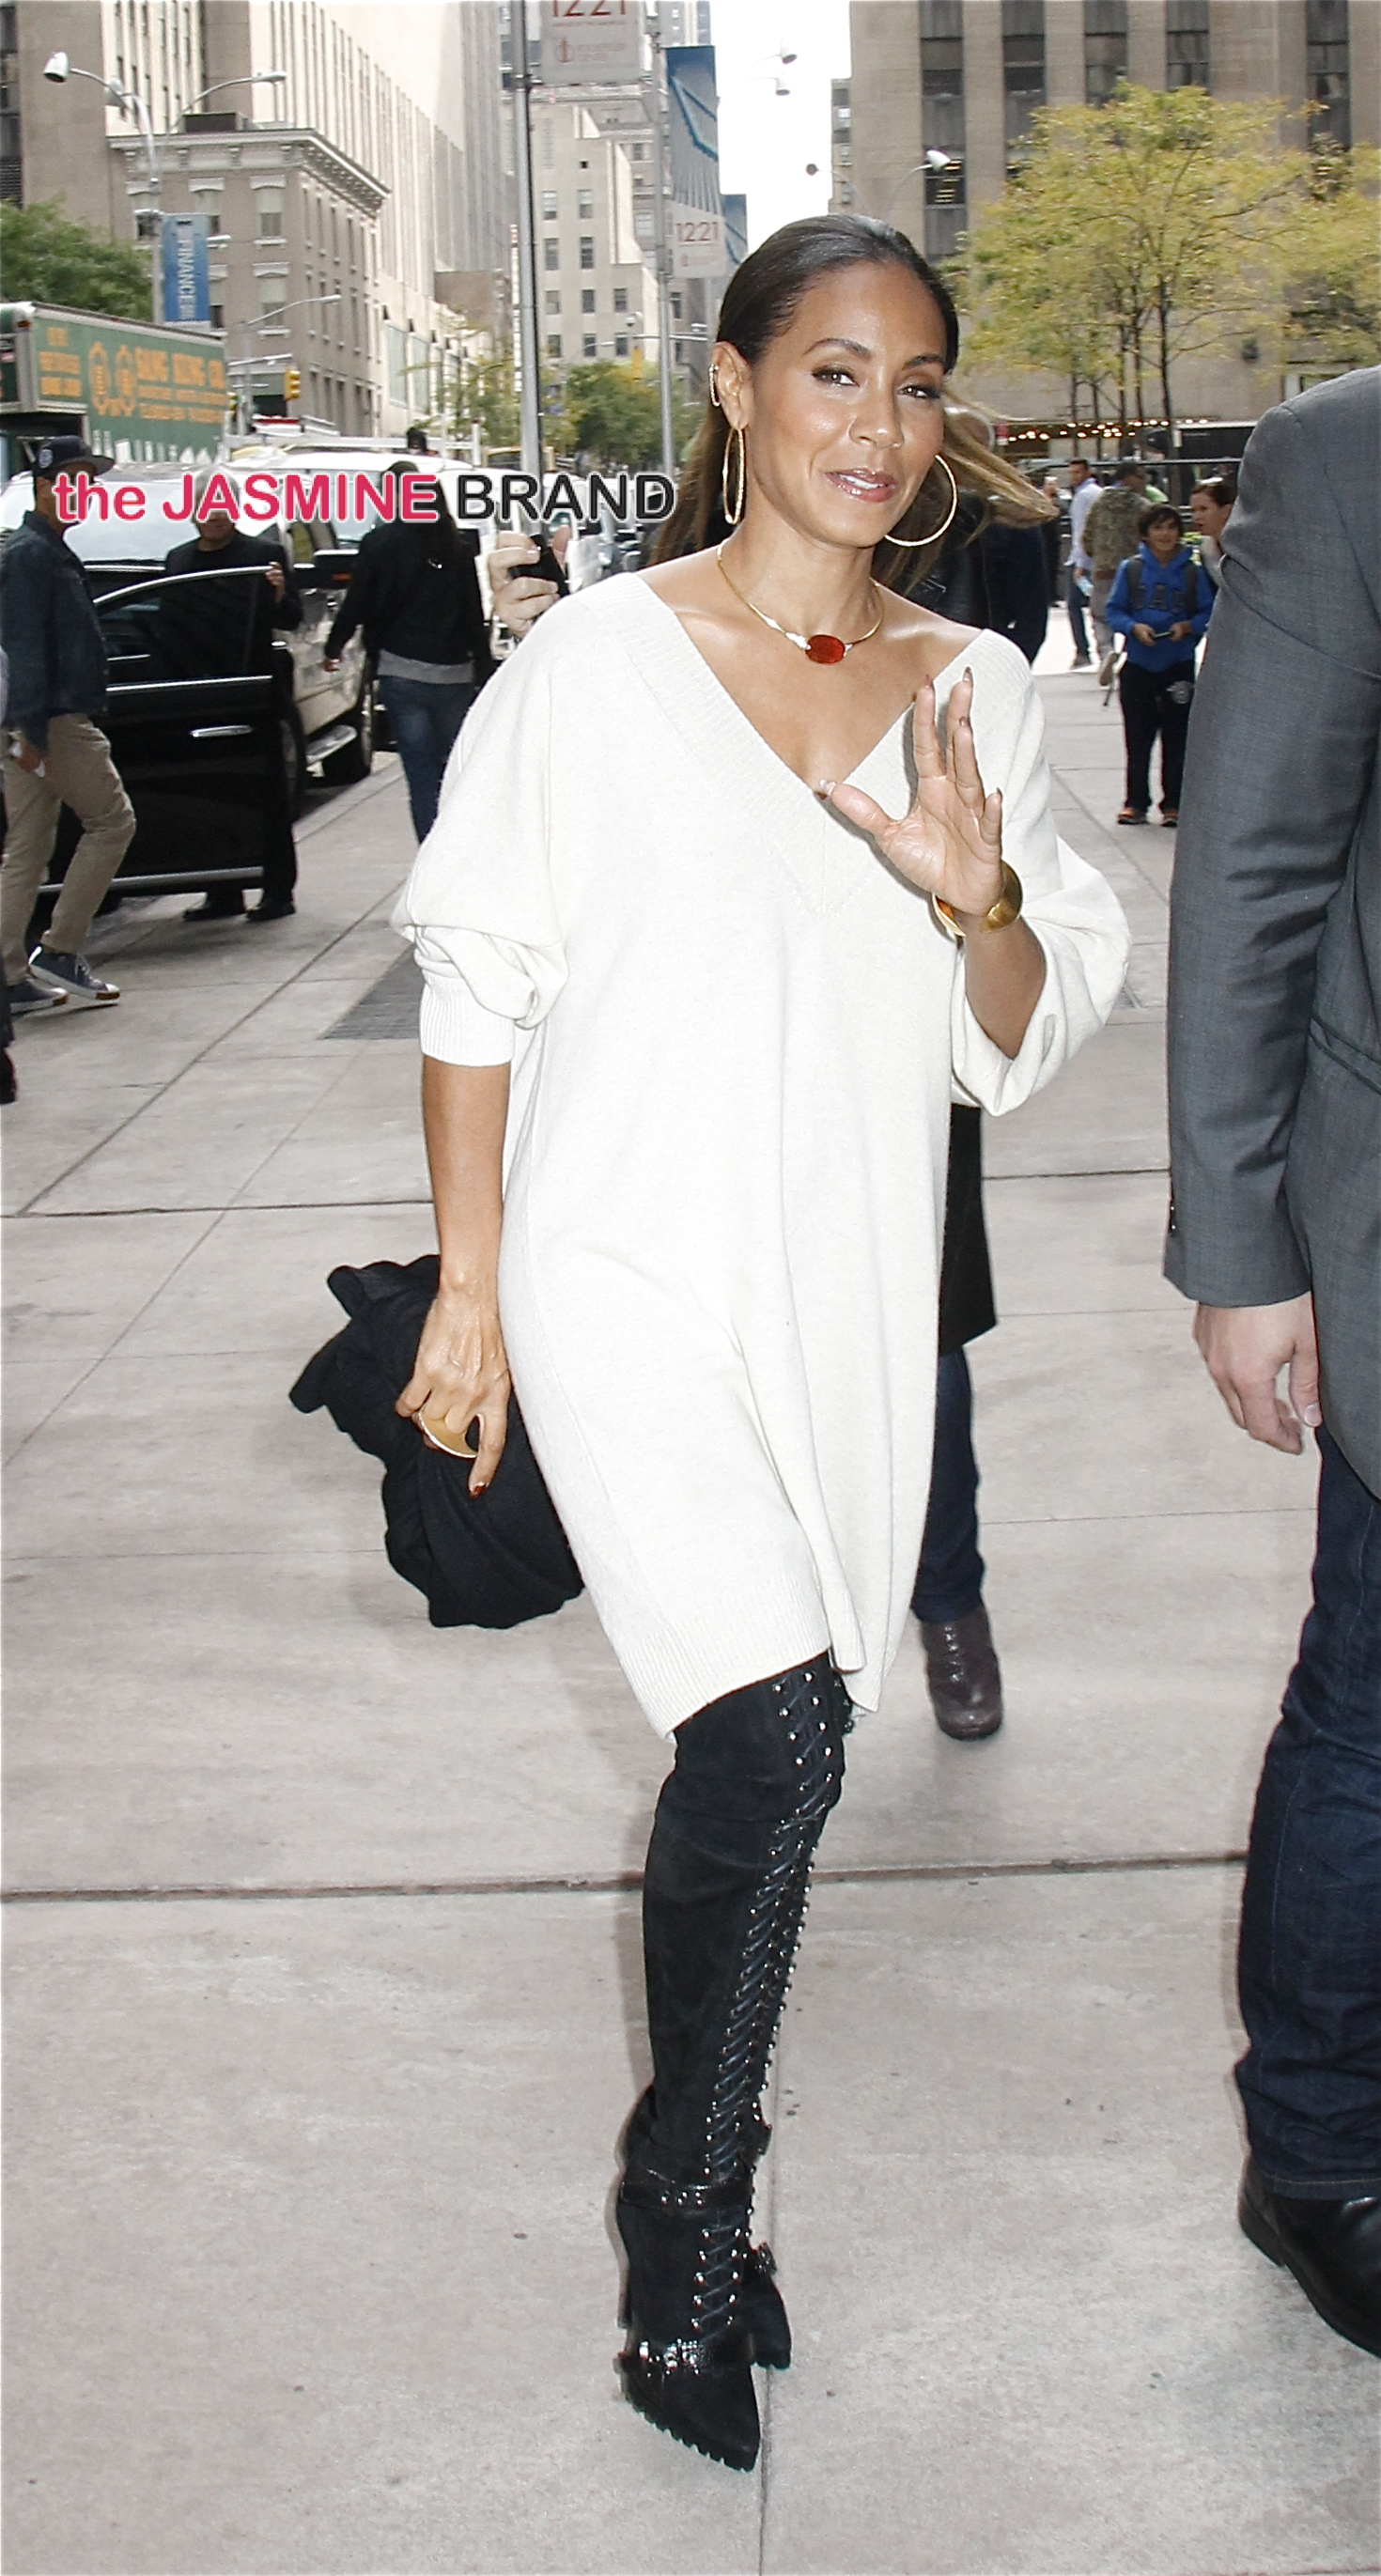 Wearing a long white sweater and black thigh-high boots, Jada Pinkett Smith arrives at SiriusXM studios in NYC